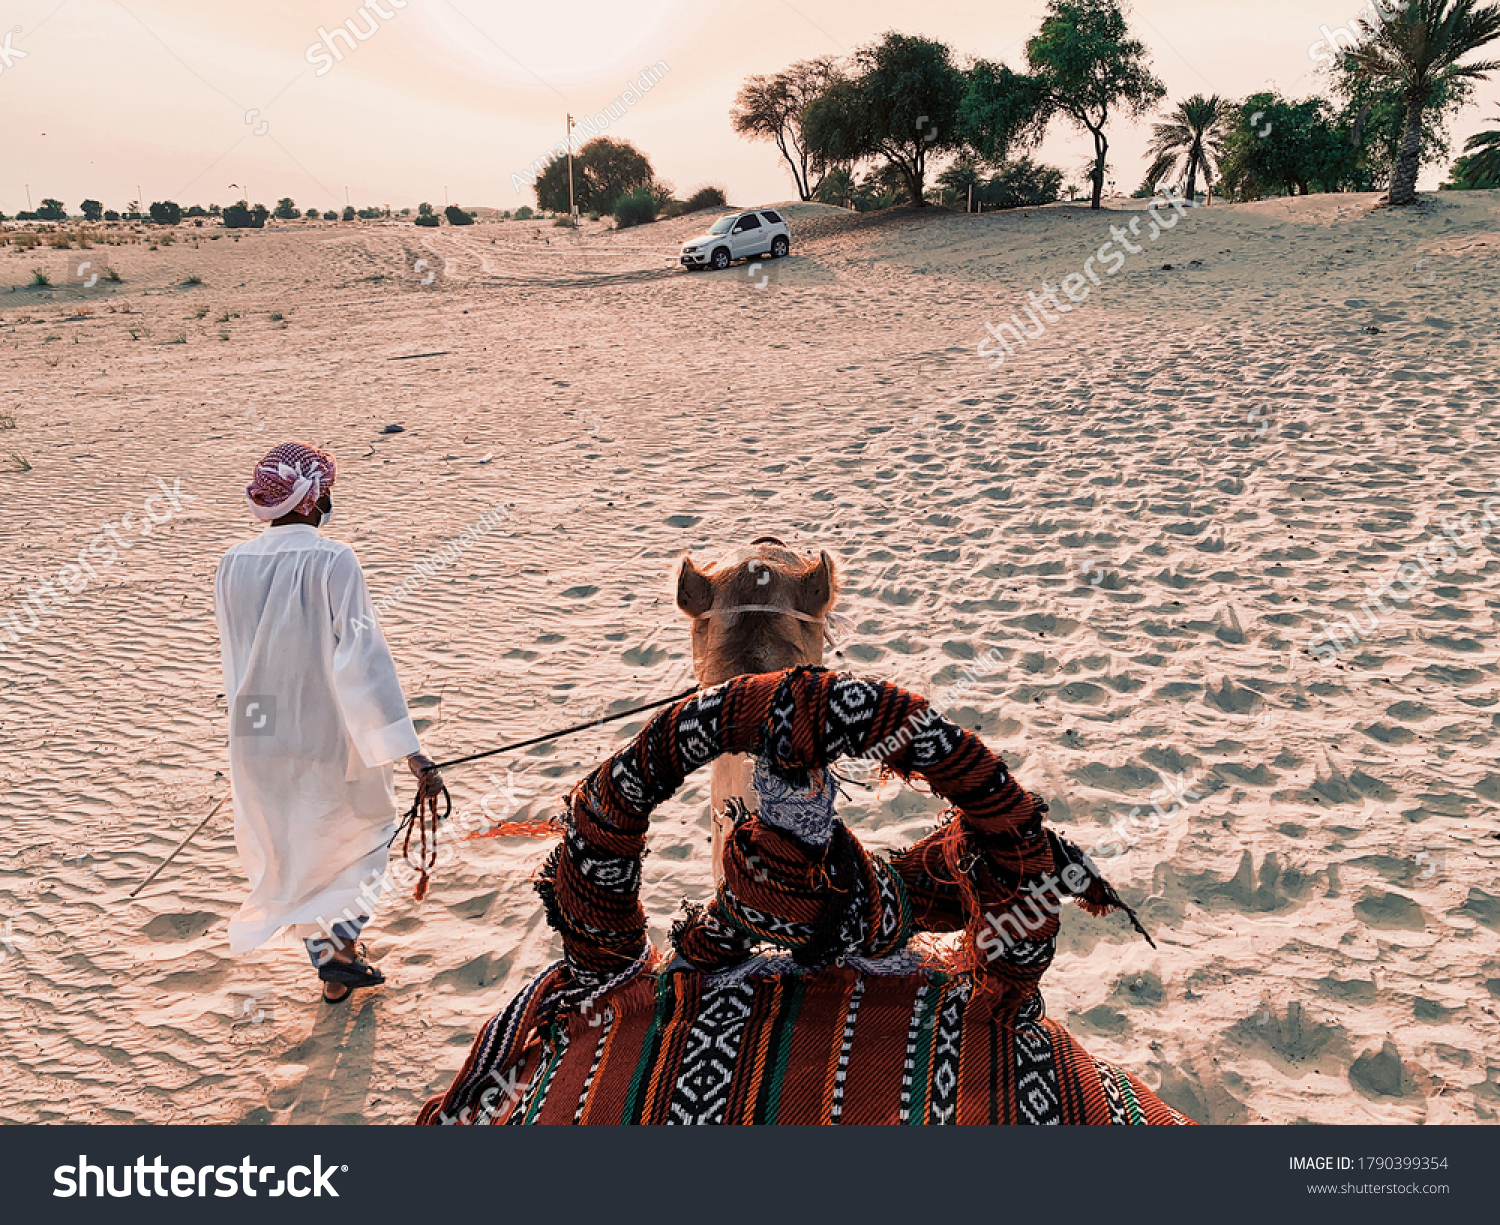 stock-photo-bedouin-guiding-camel-using-